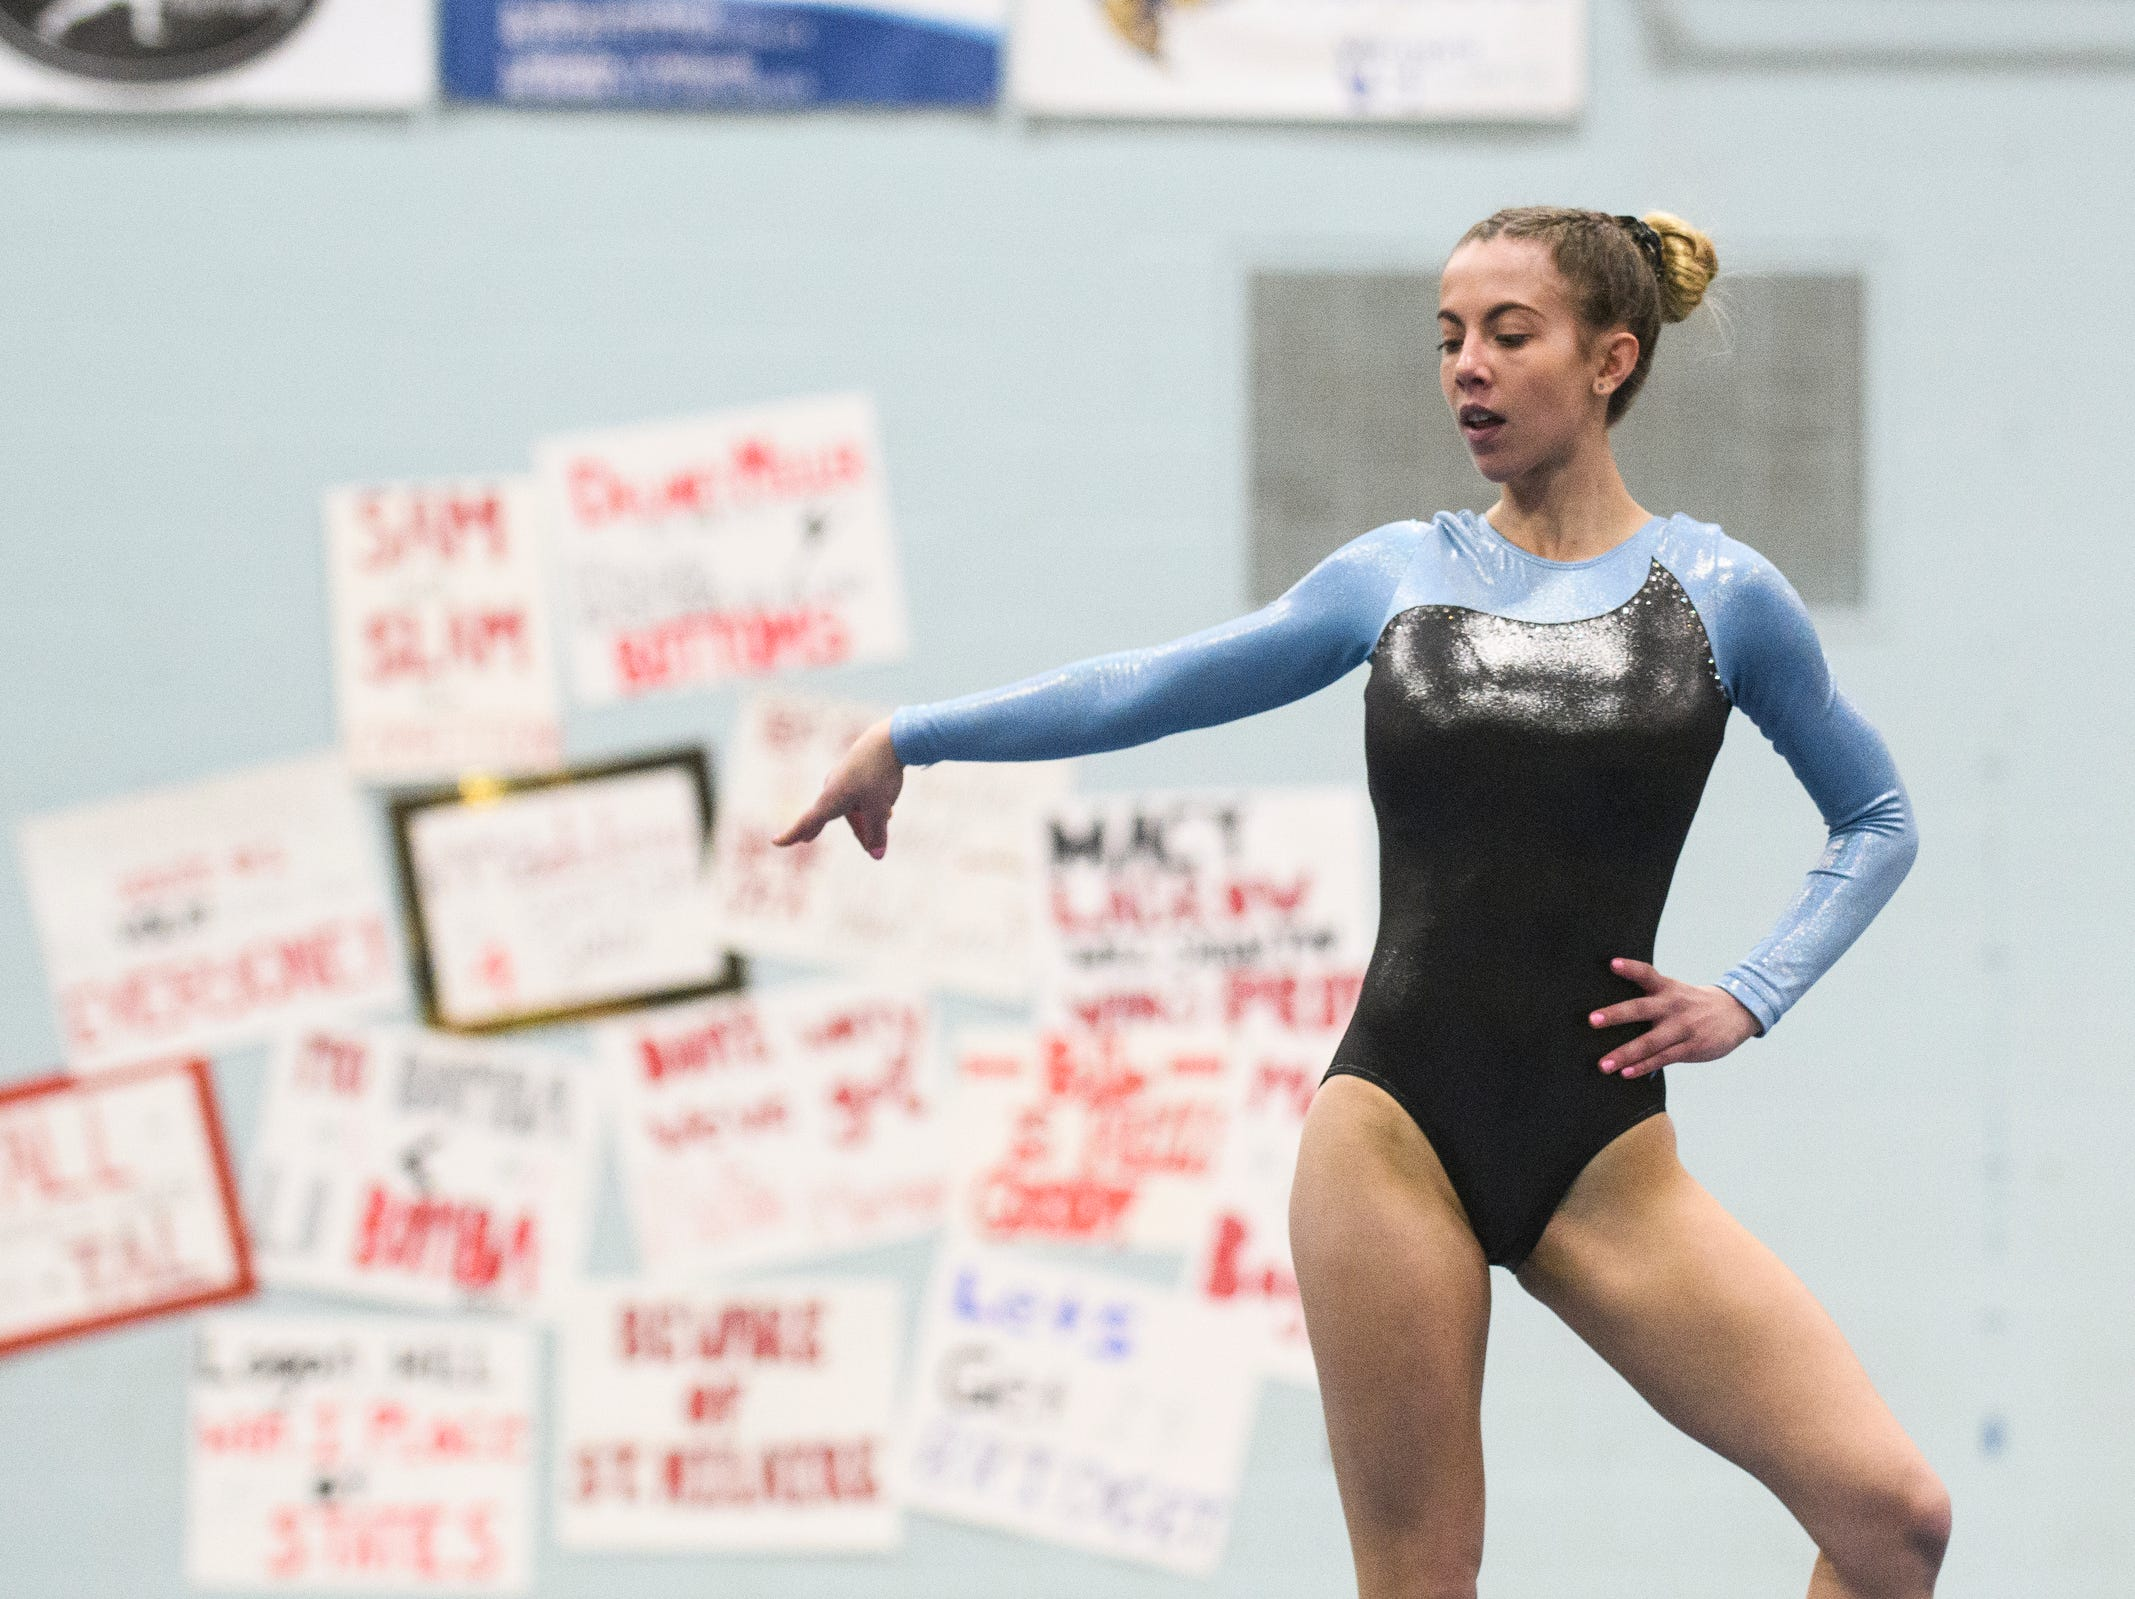 South Burlington's Diana Gregoire competes in the floor routine during the 2019 high school gymnastics championship at Essex High School on Saturday afternoon February 16, 2019 in Essex, Vermont.